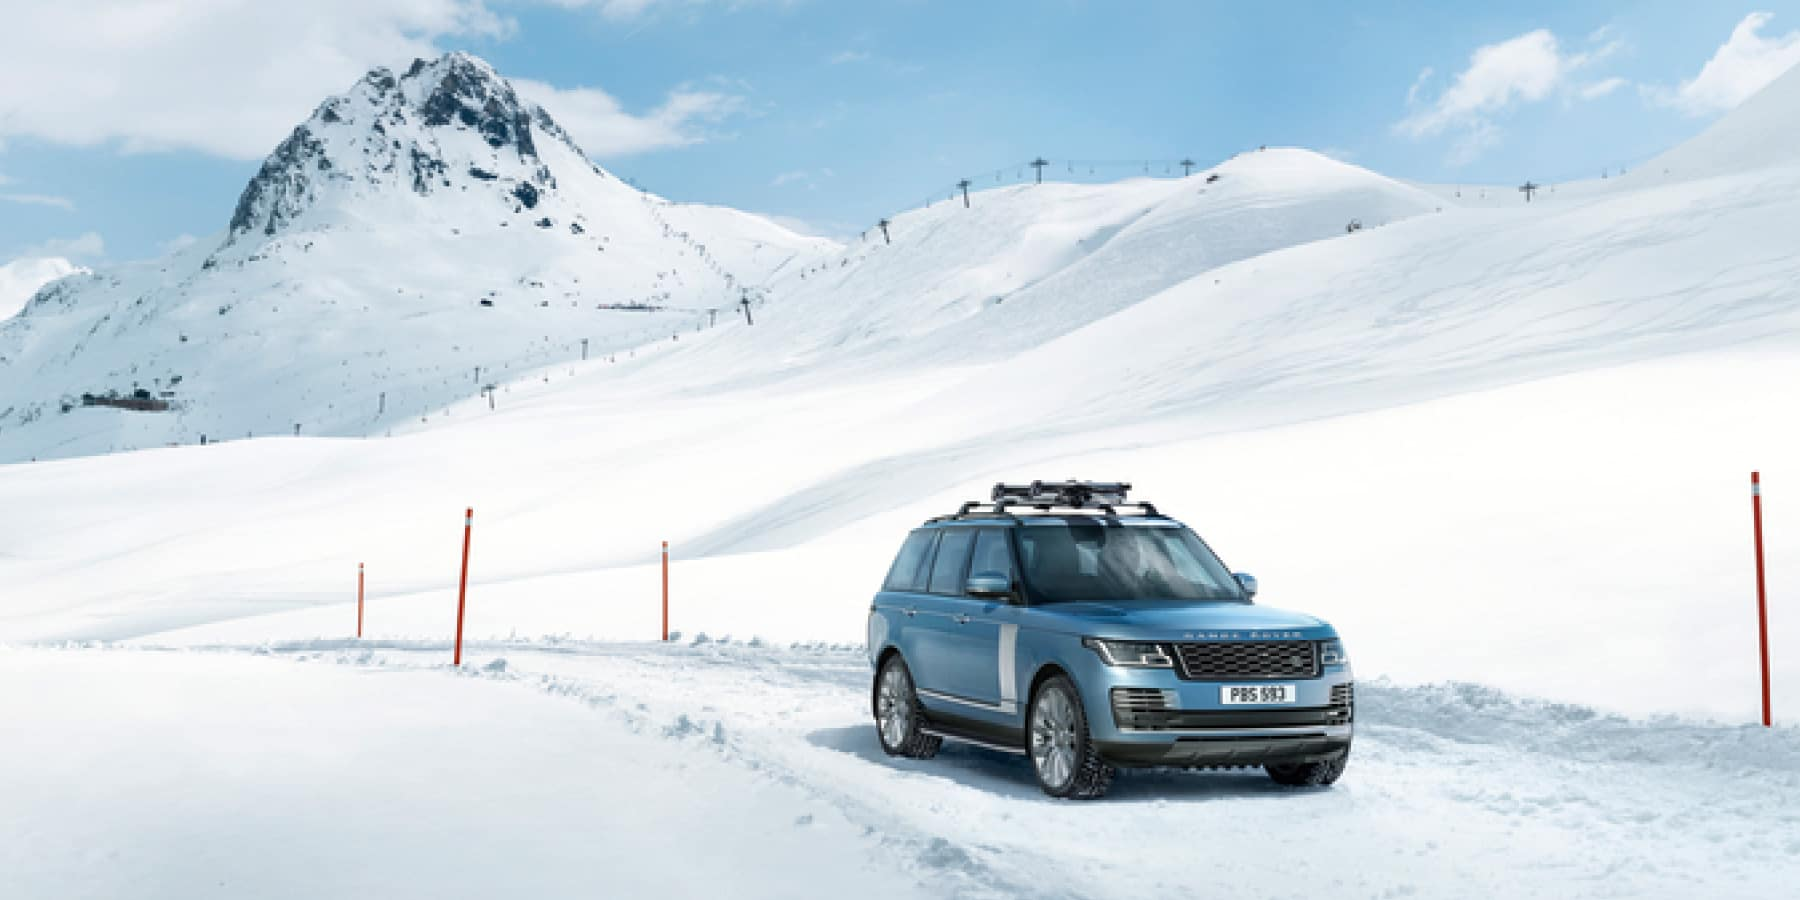 Autobahn Land Rover | Range Rover in the Snow